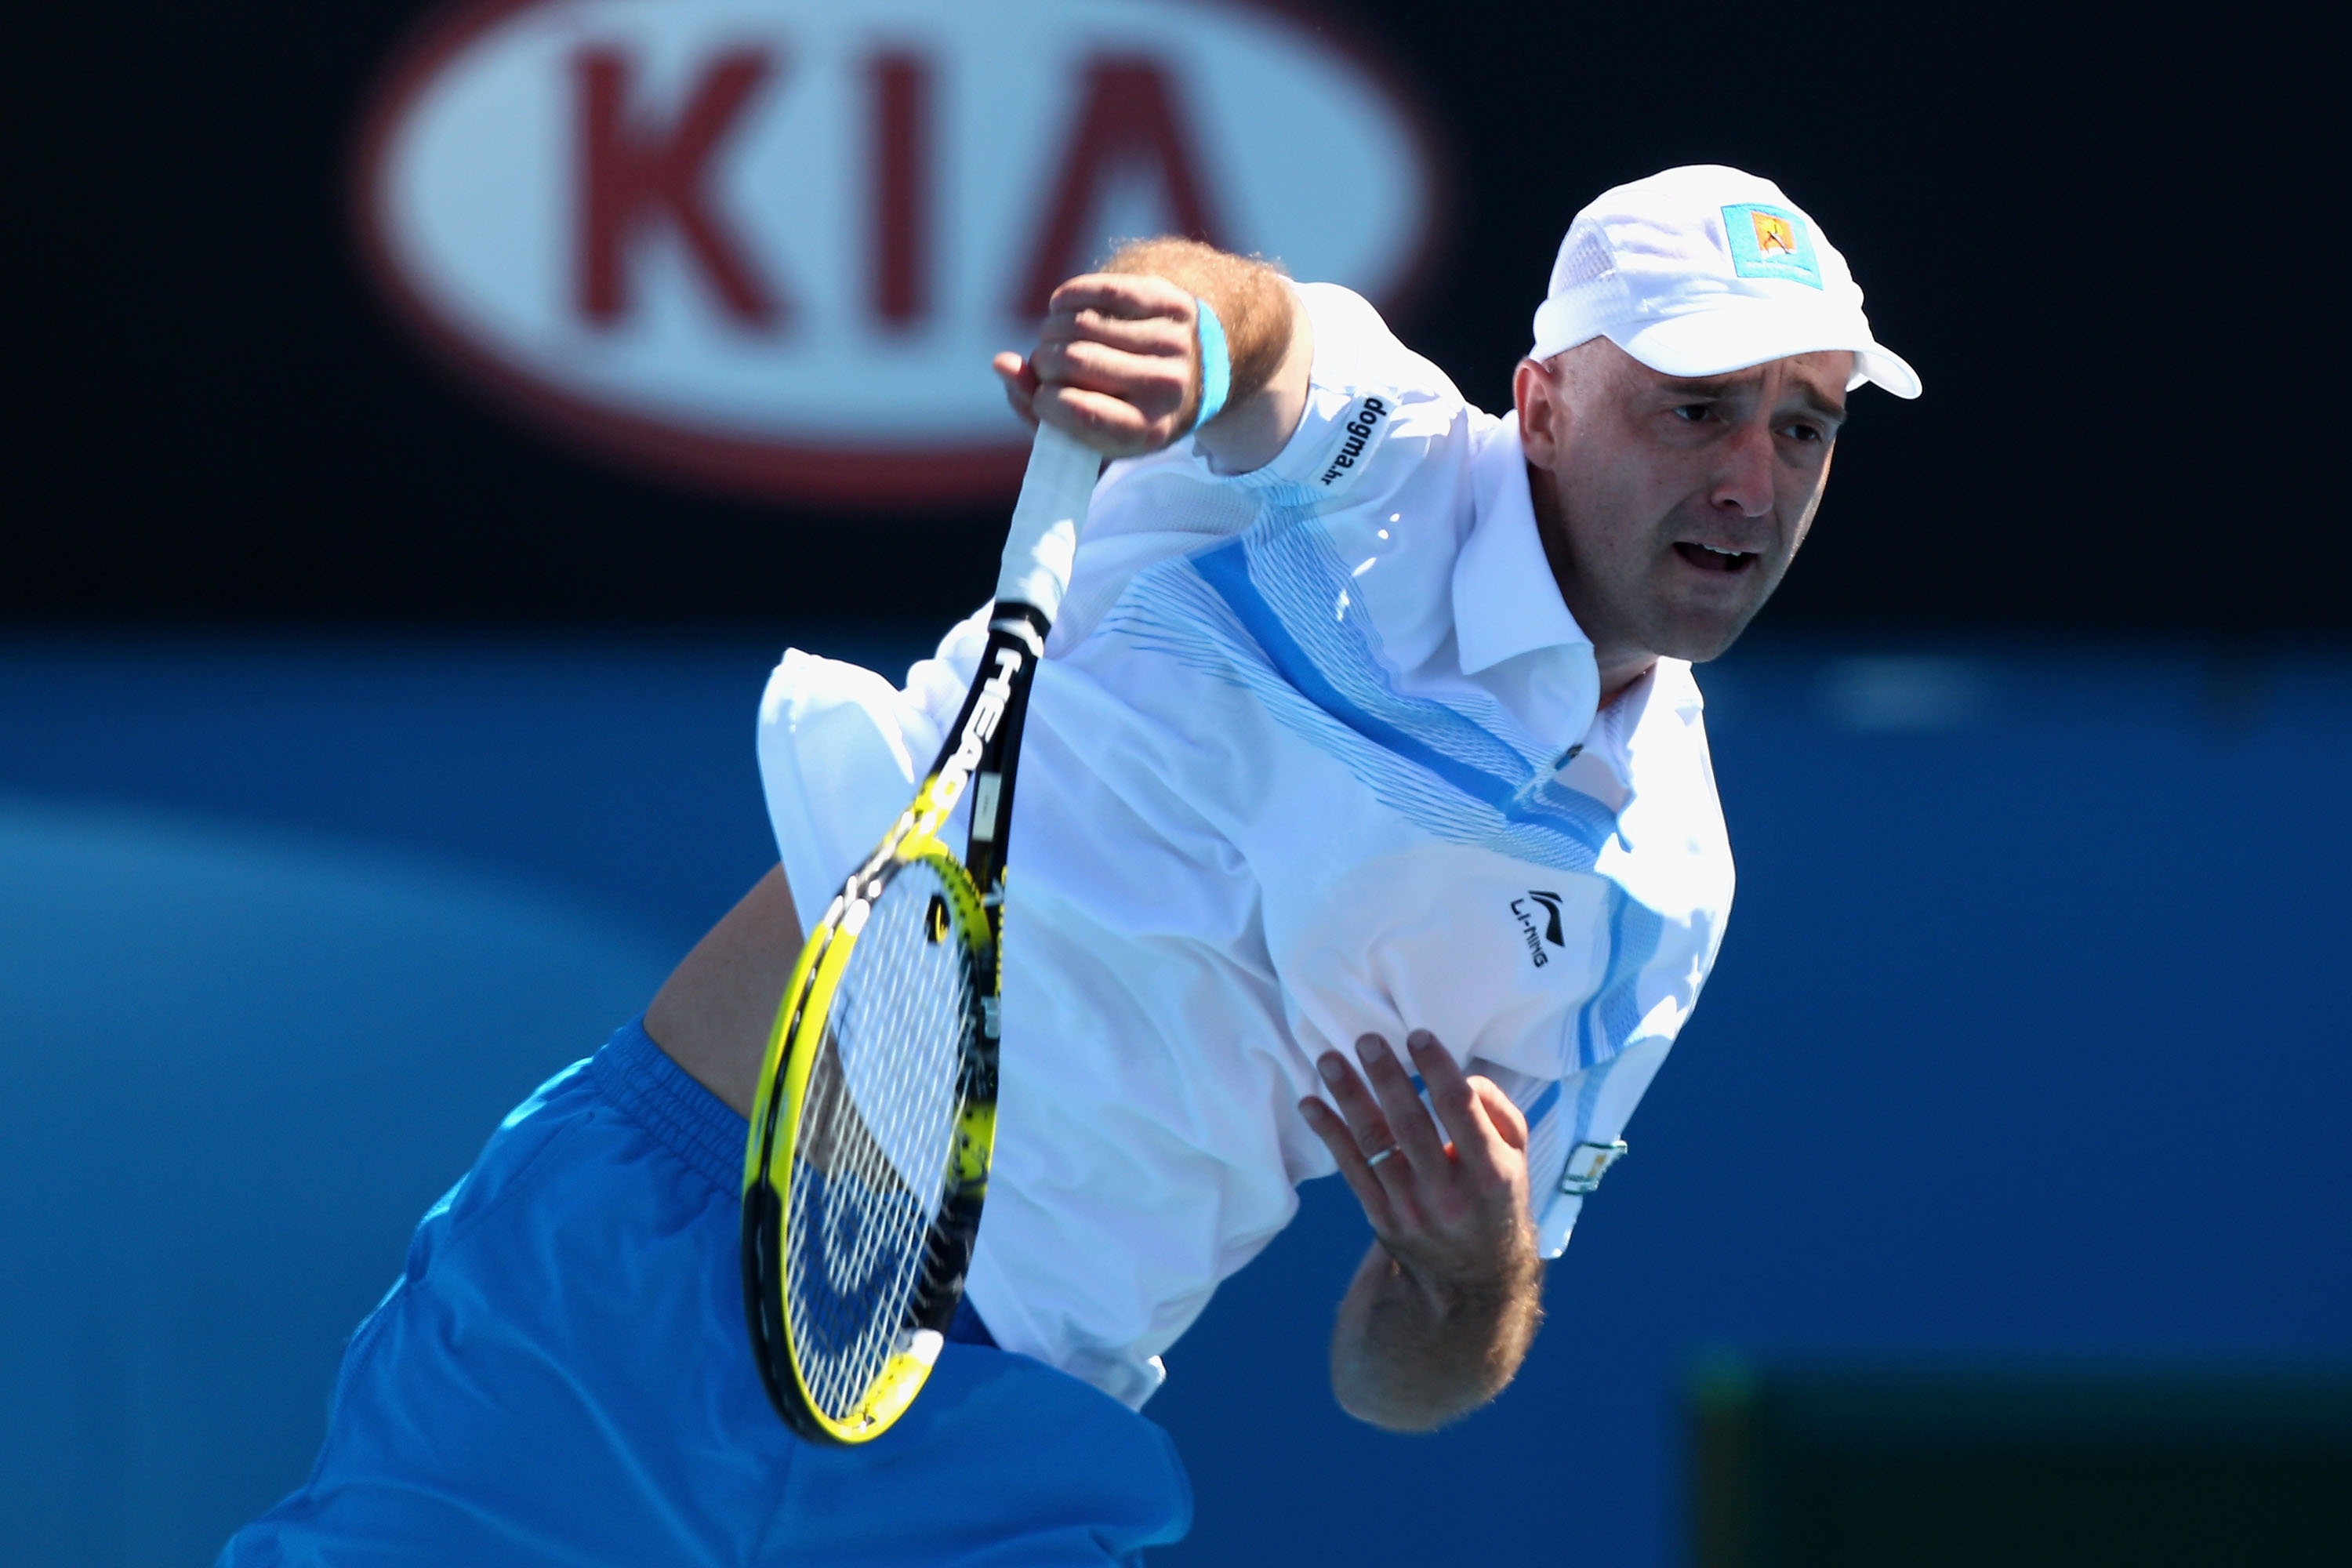 MELBOURNE, AUSTRALIA - JANUARY 19:  Ivan Ljubicic of Croatia serves during his second round match against Benoit Paire of France during day three of the 2011 Australian Open at Melbourne Park on January 19, 2011 in Melbourne, Australia.  (Photo by Ryan Pi